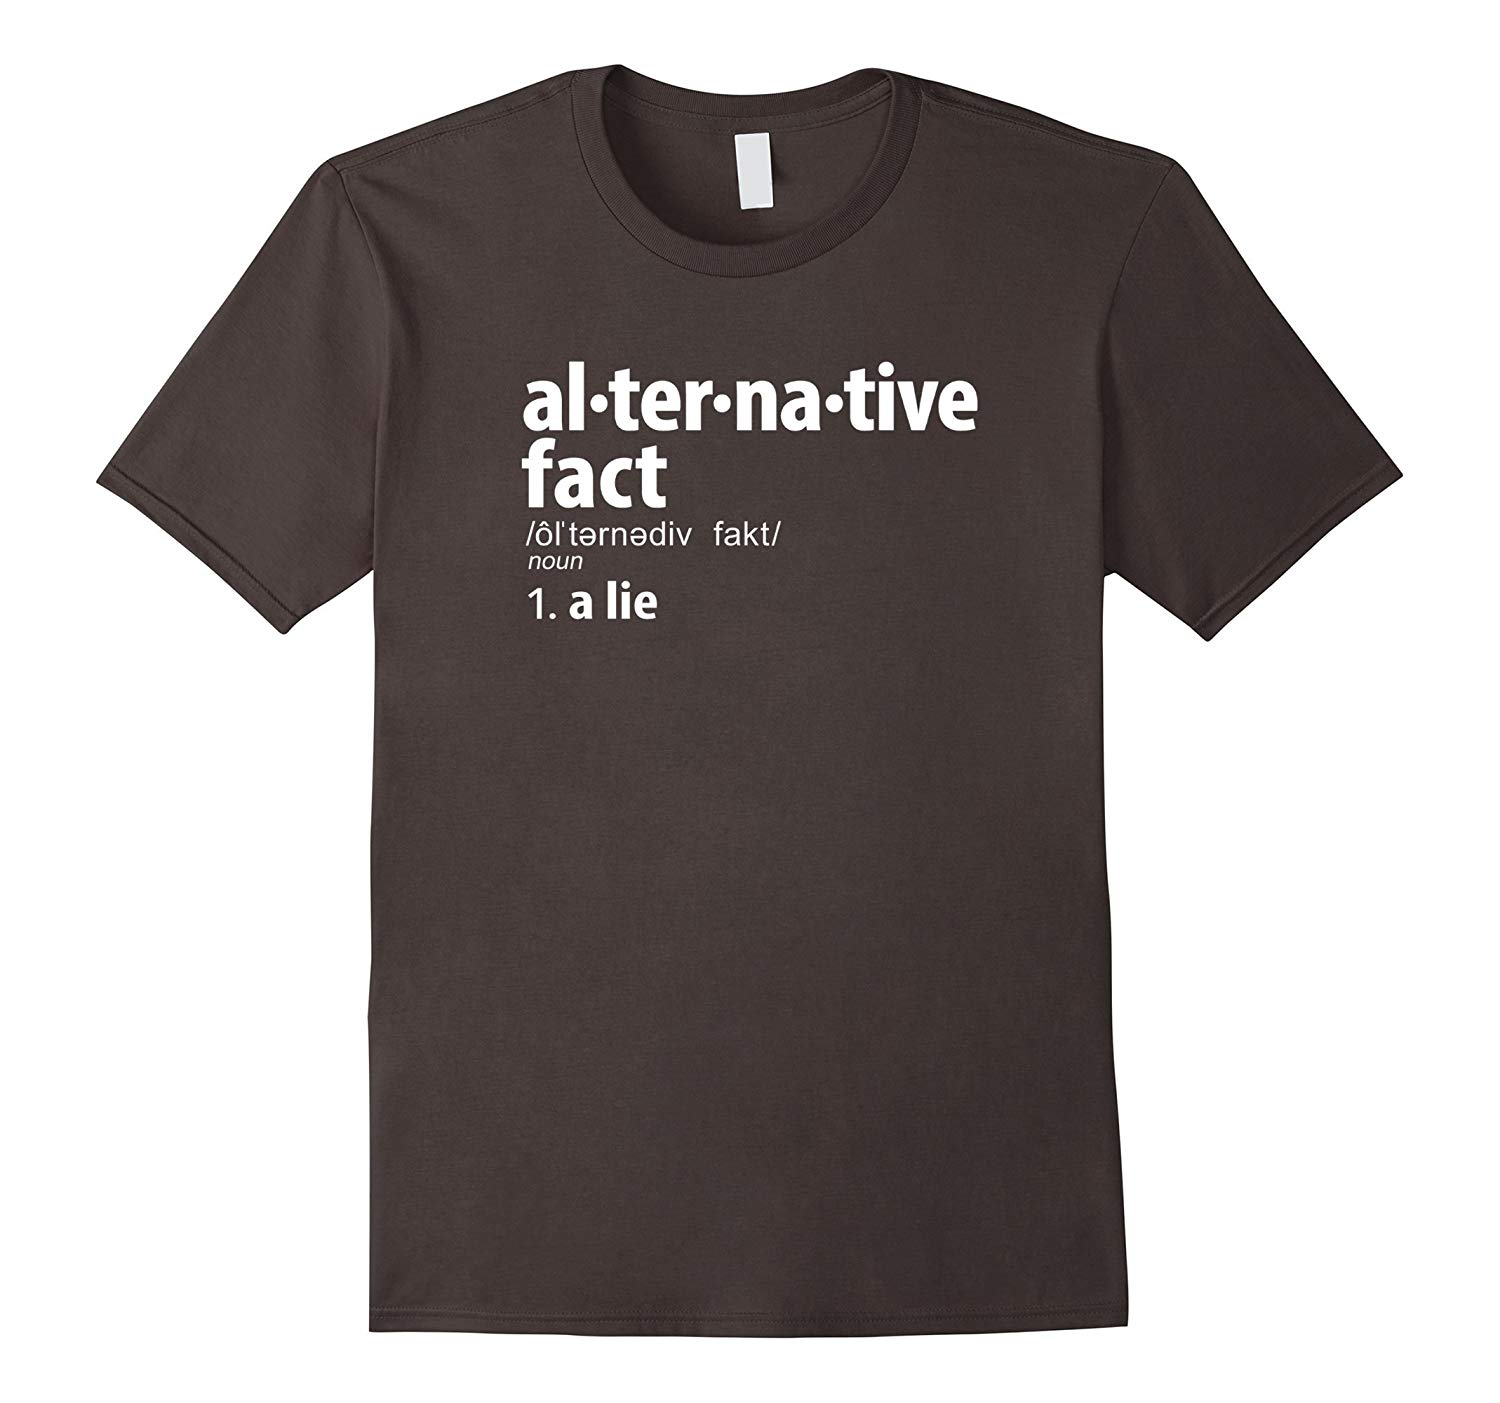 Alternative Facts Definition TShirtTH T shirt, Shirts